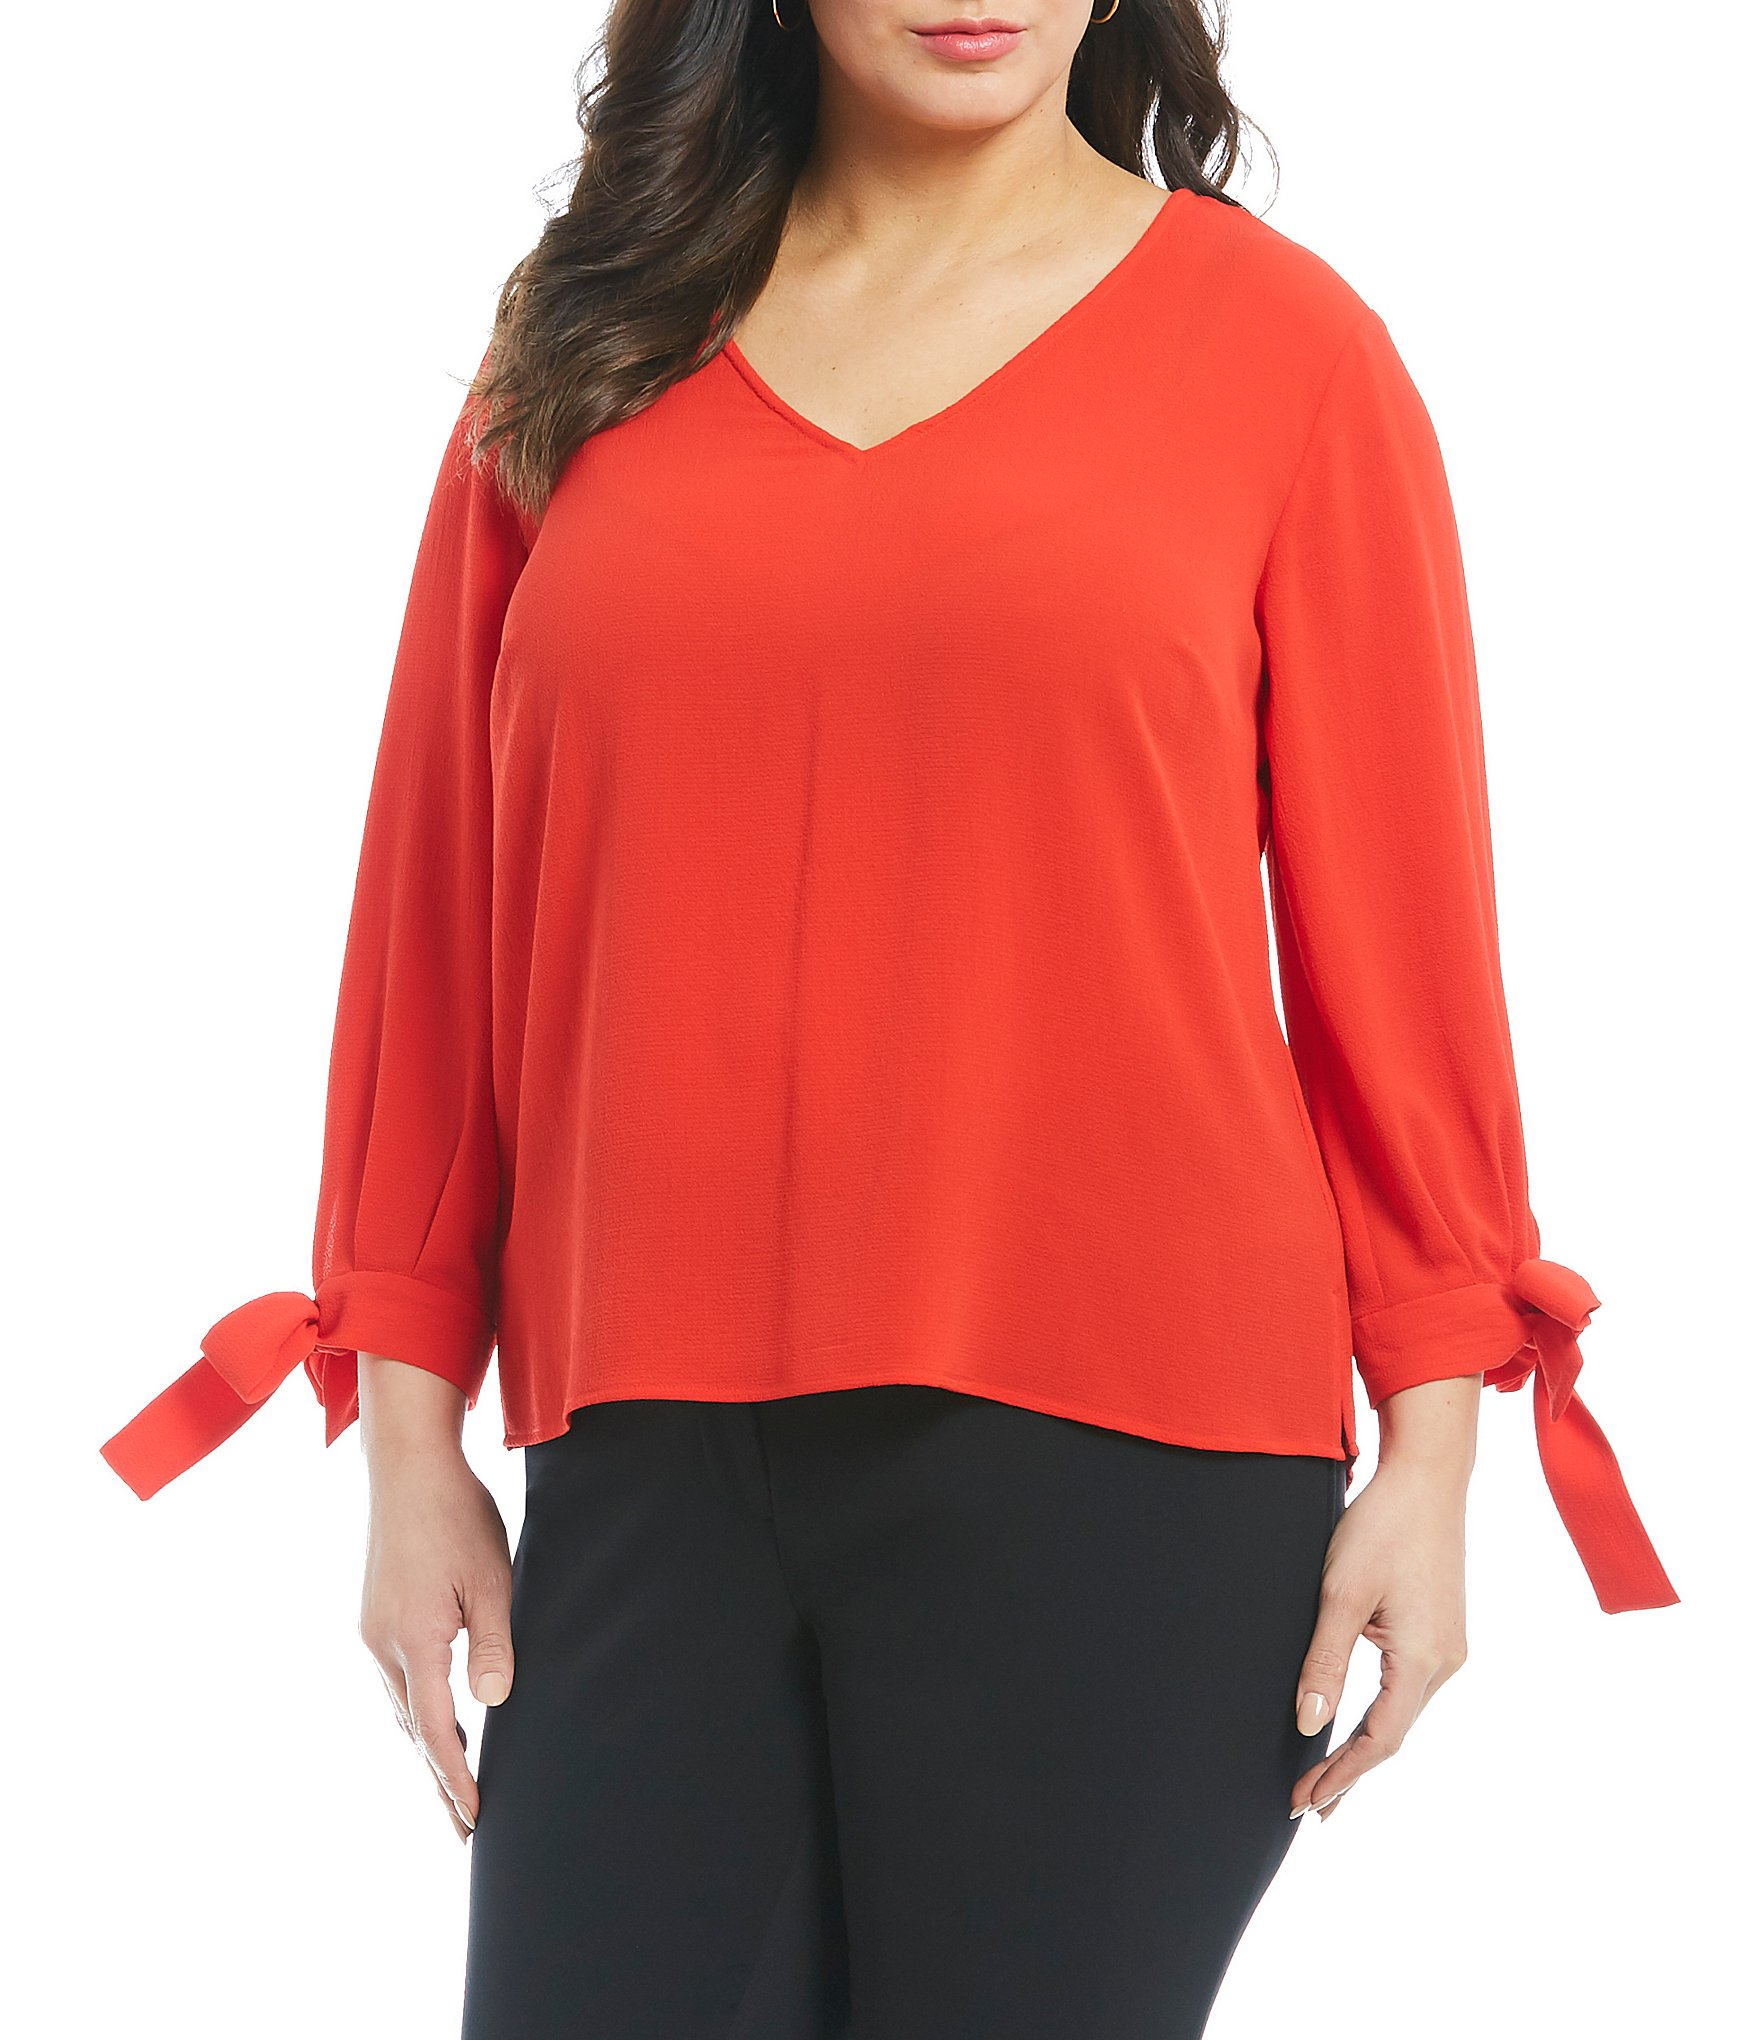 Red Plus Size Dresses Womens Plus Size Clothing Dillards